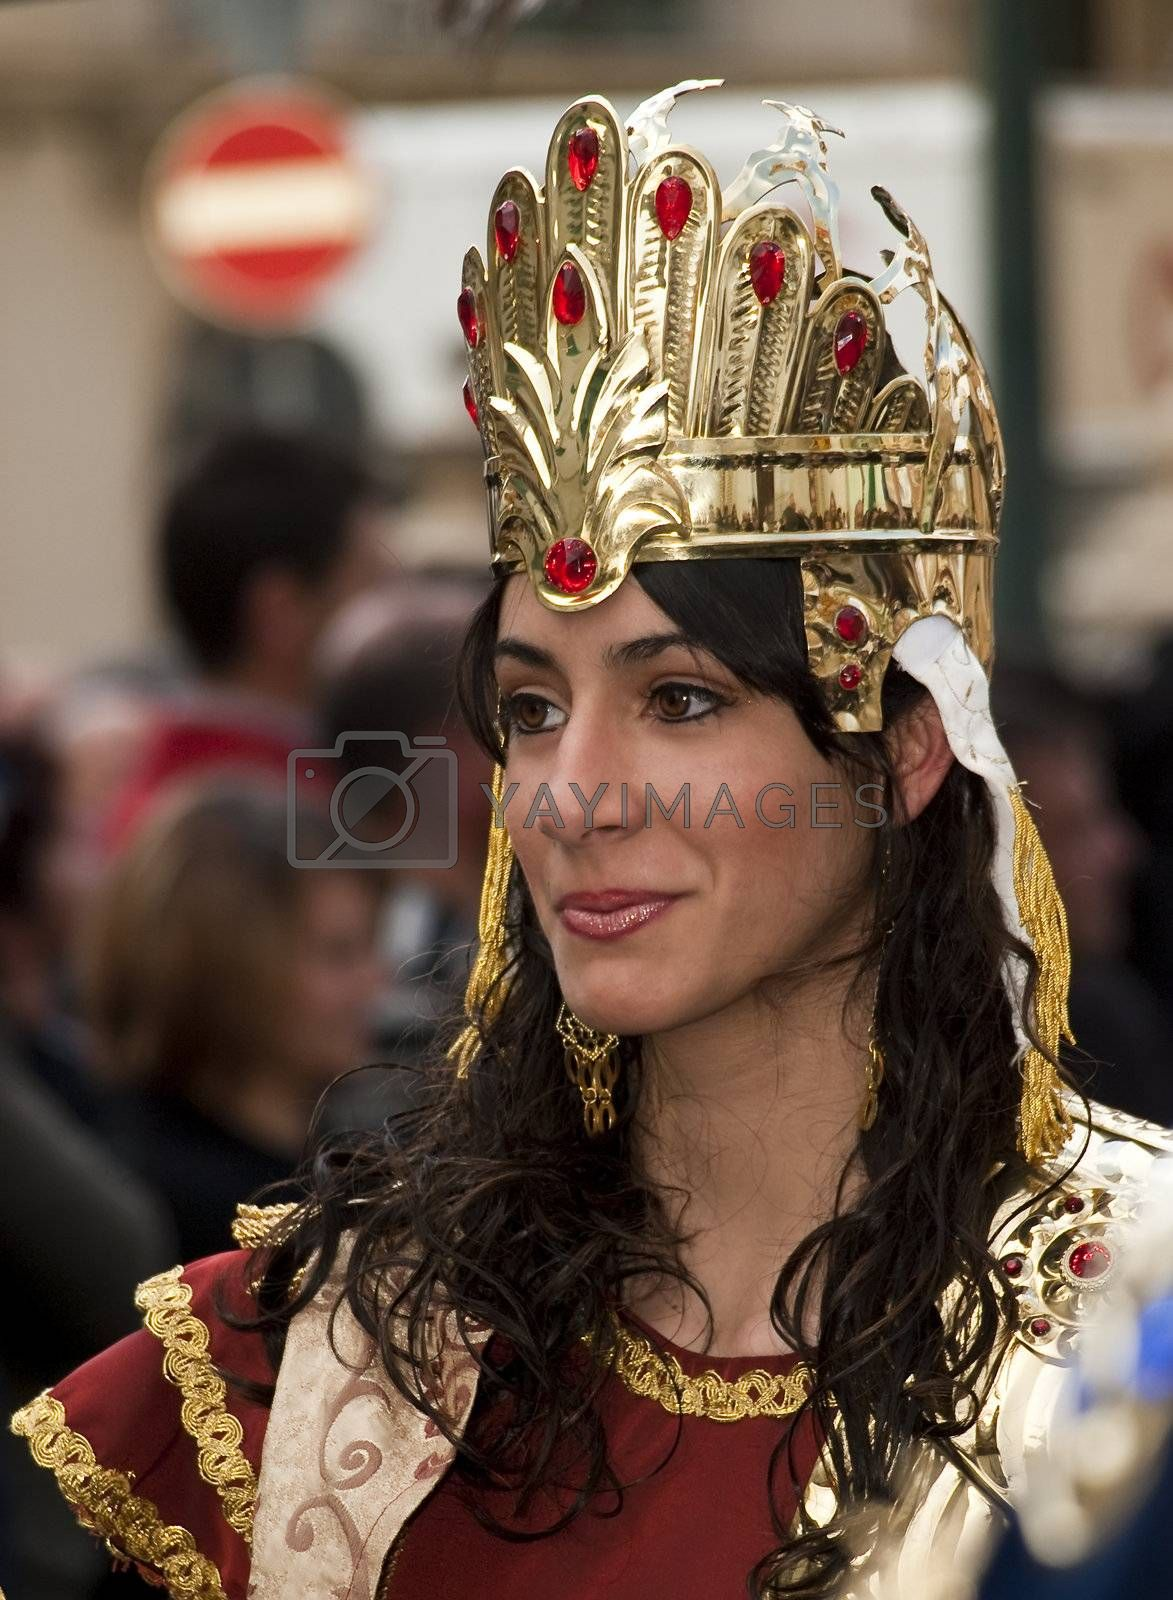 LUQA, MALTA - APR10 - Portrait of Persian Queen during the Good Friday procession in the village of Luqa in Malta April 10, 2009